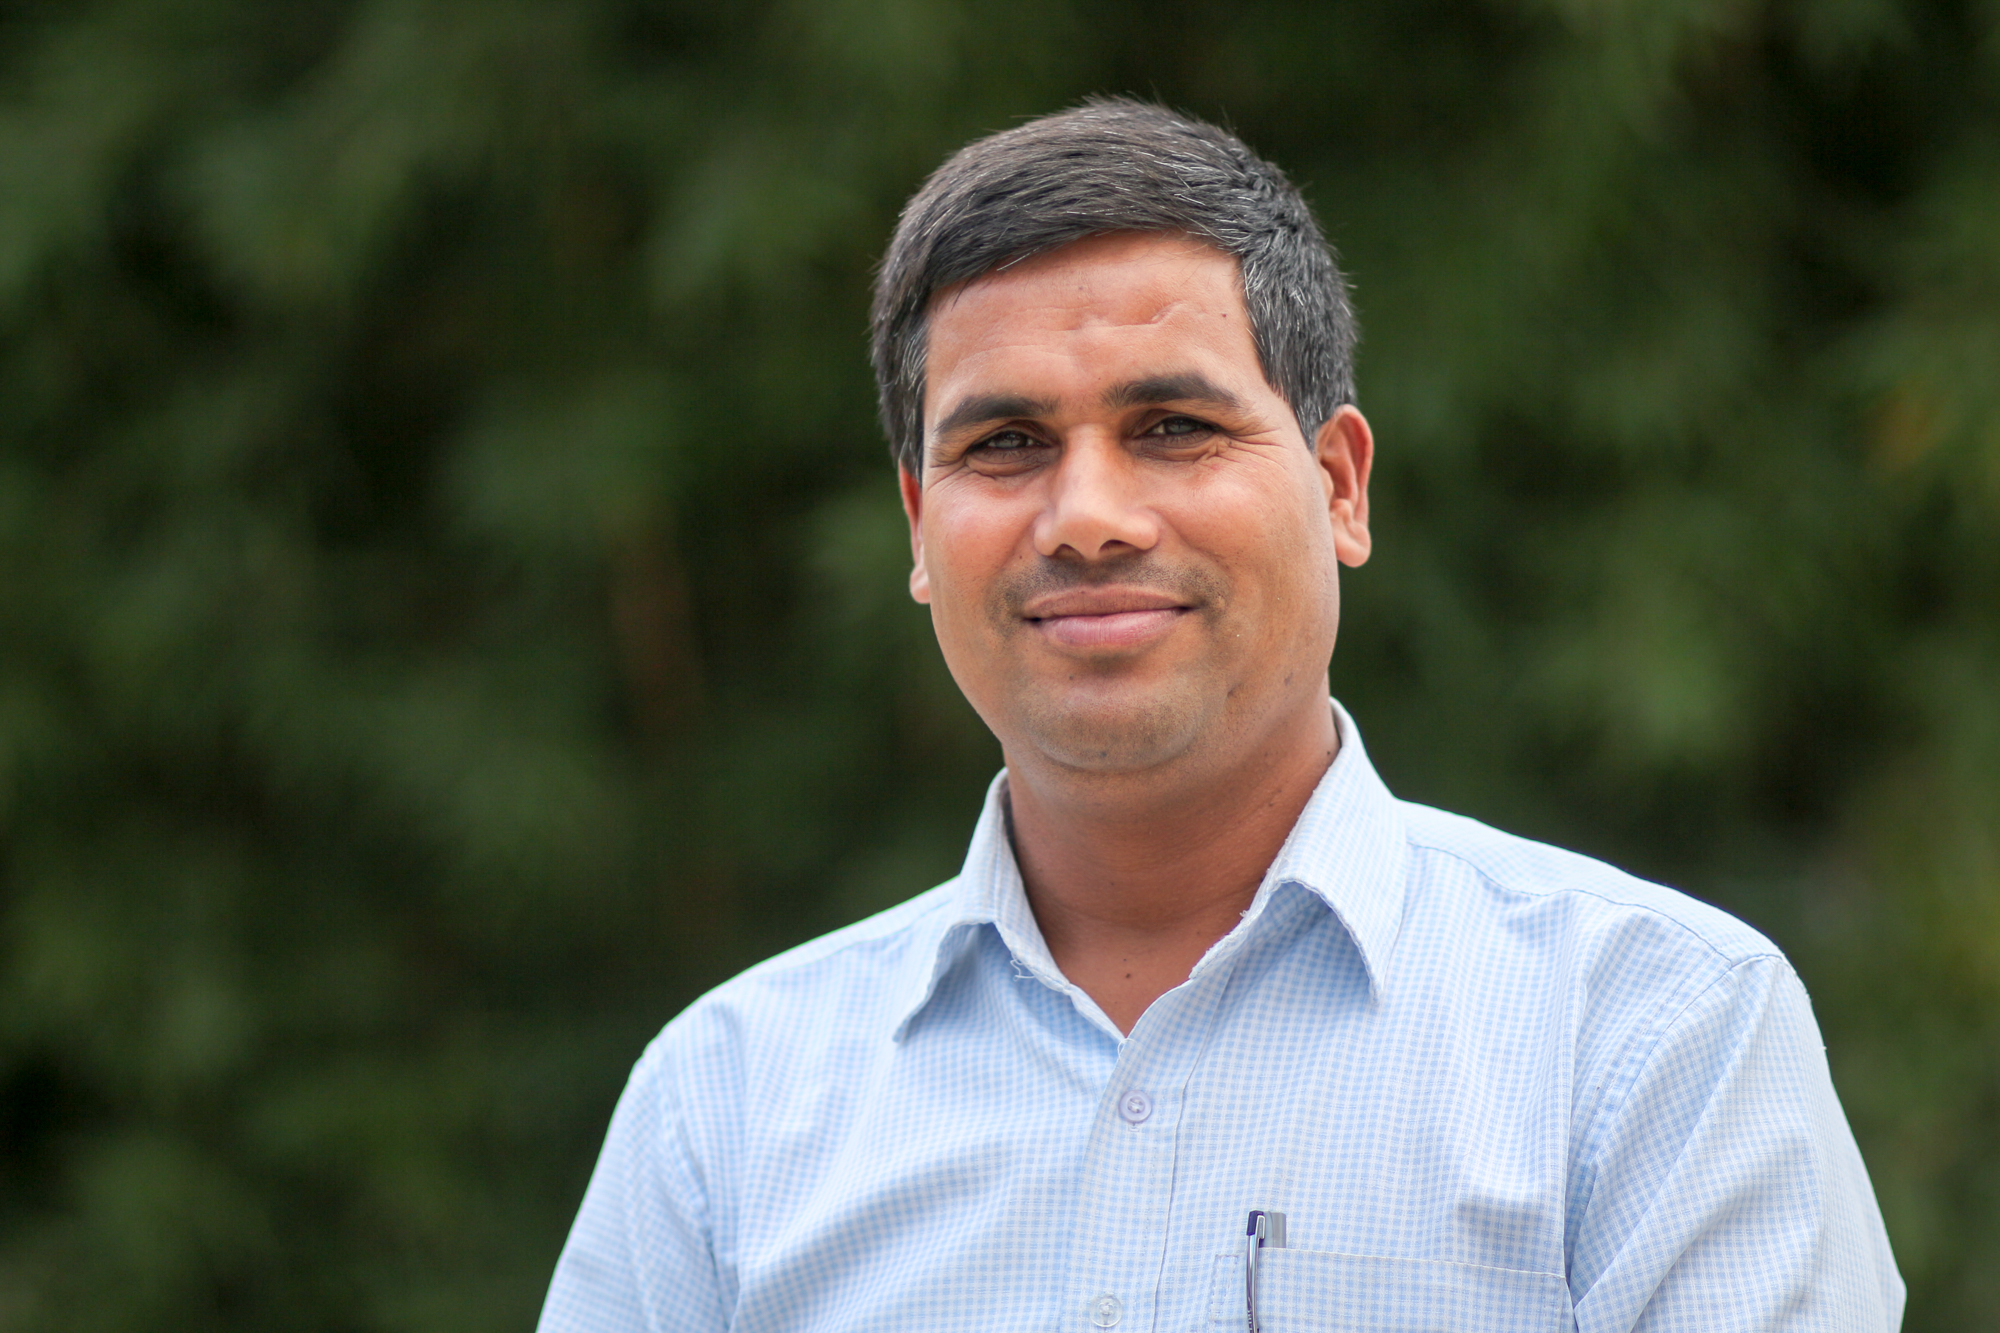 Govinda Prasad Acharya, District Program Officer